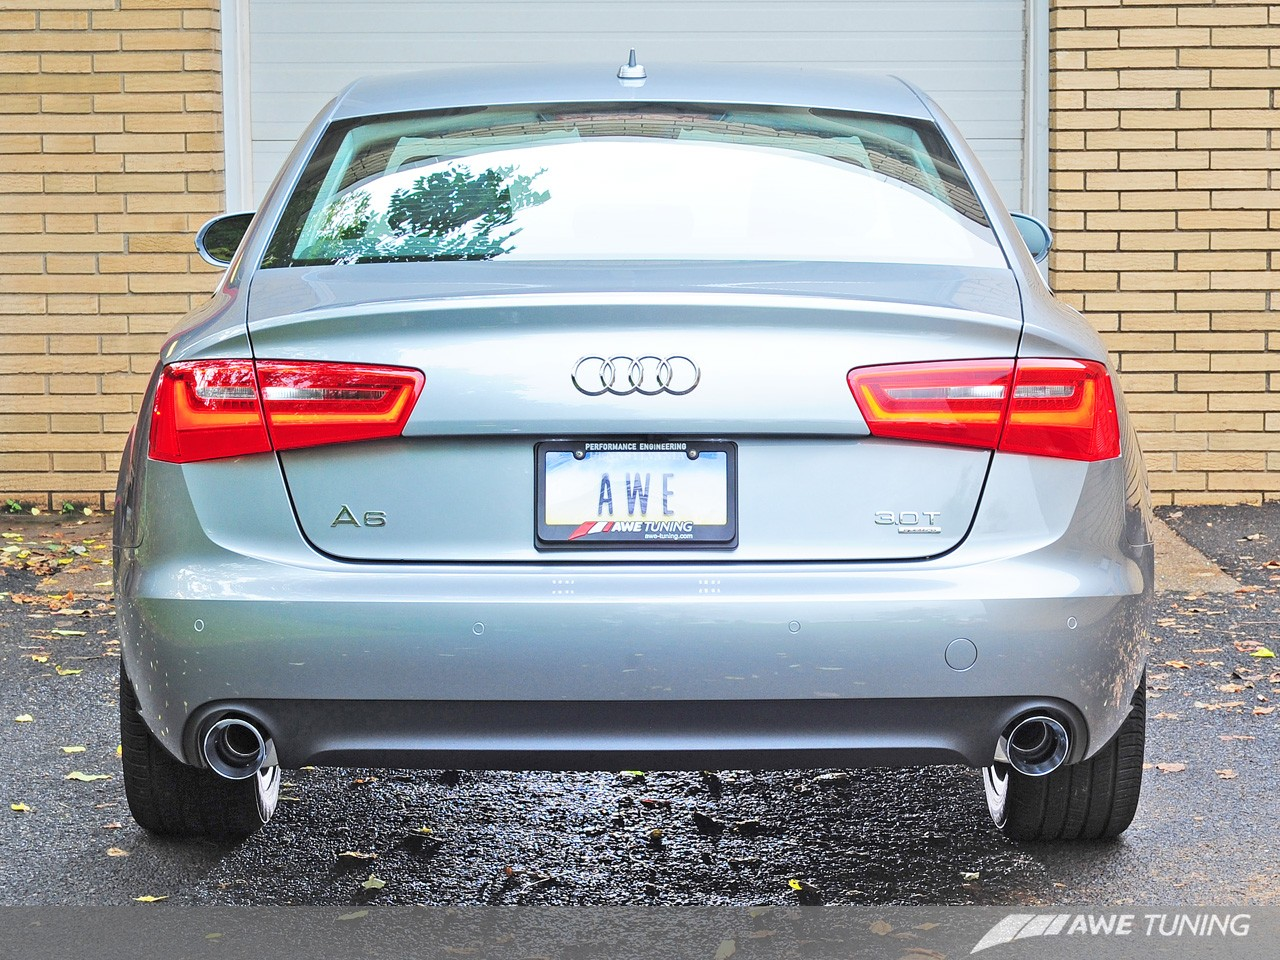 Awe Tuning Audi C7 A6 Touring Edition Exhaust Systems Awe